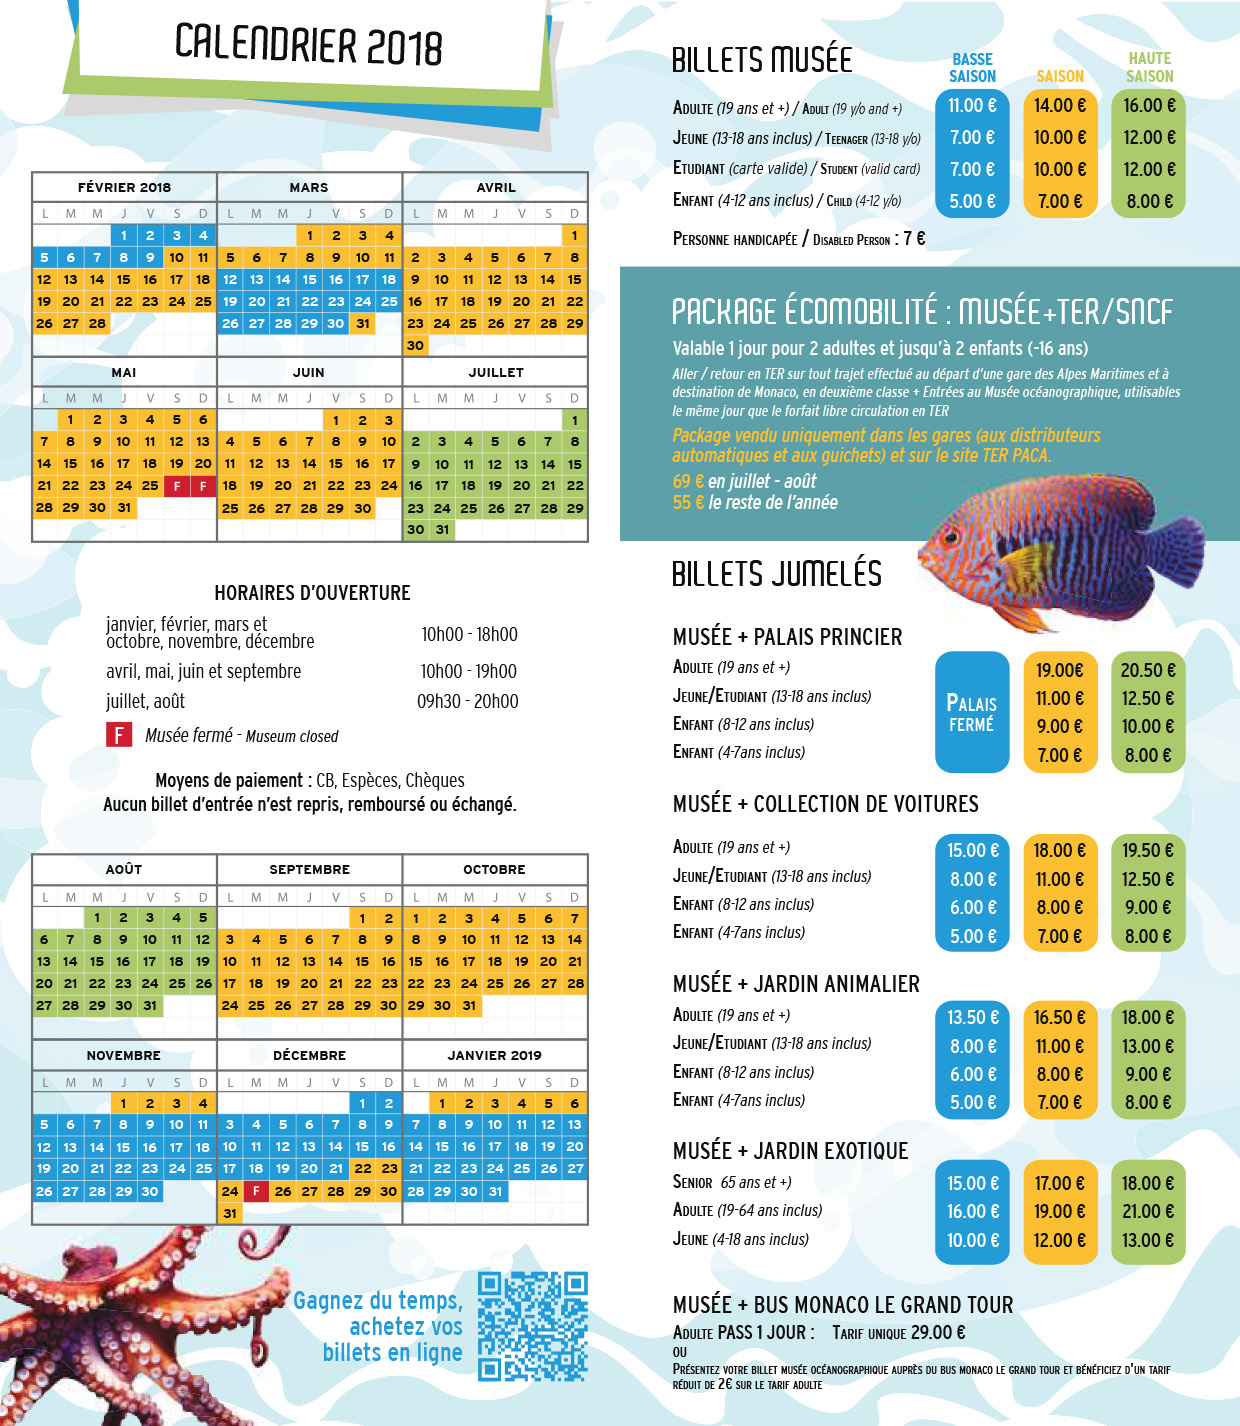 Prices 2018 for the Oceanographic Museum of Monaco